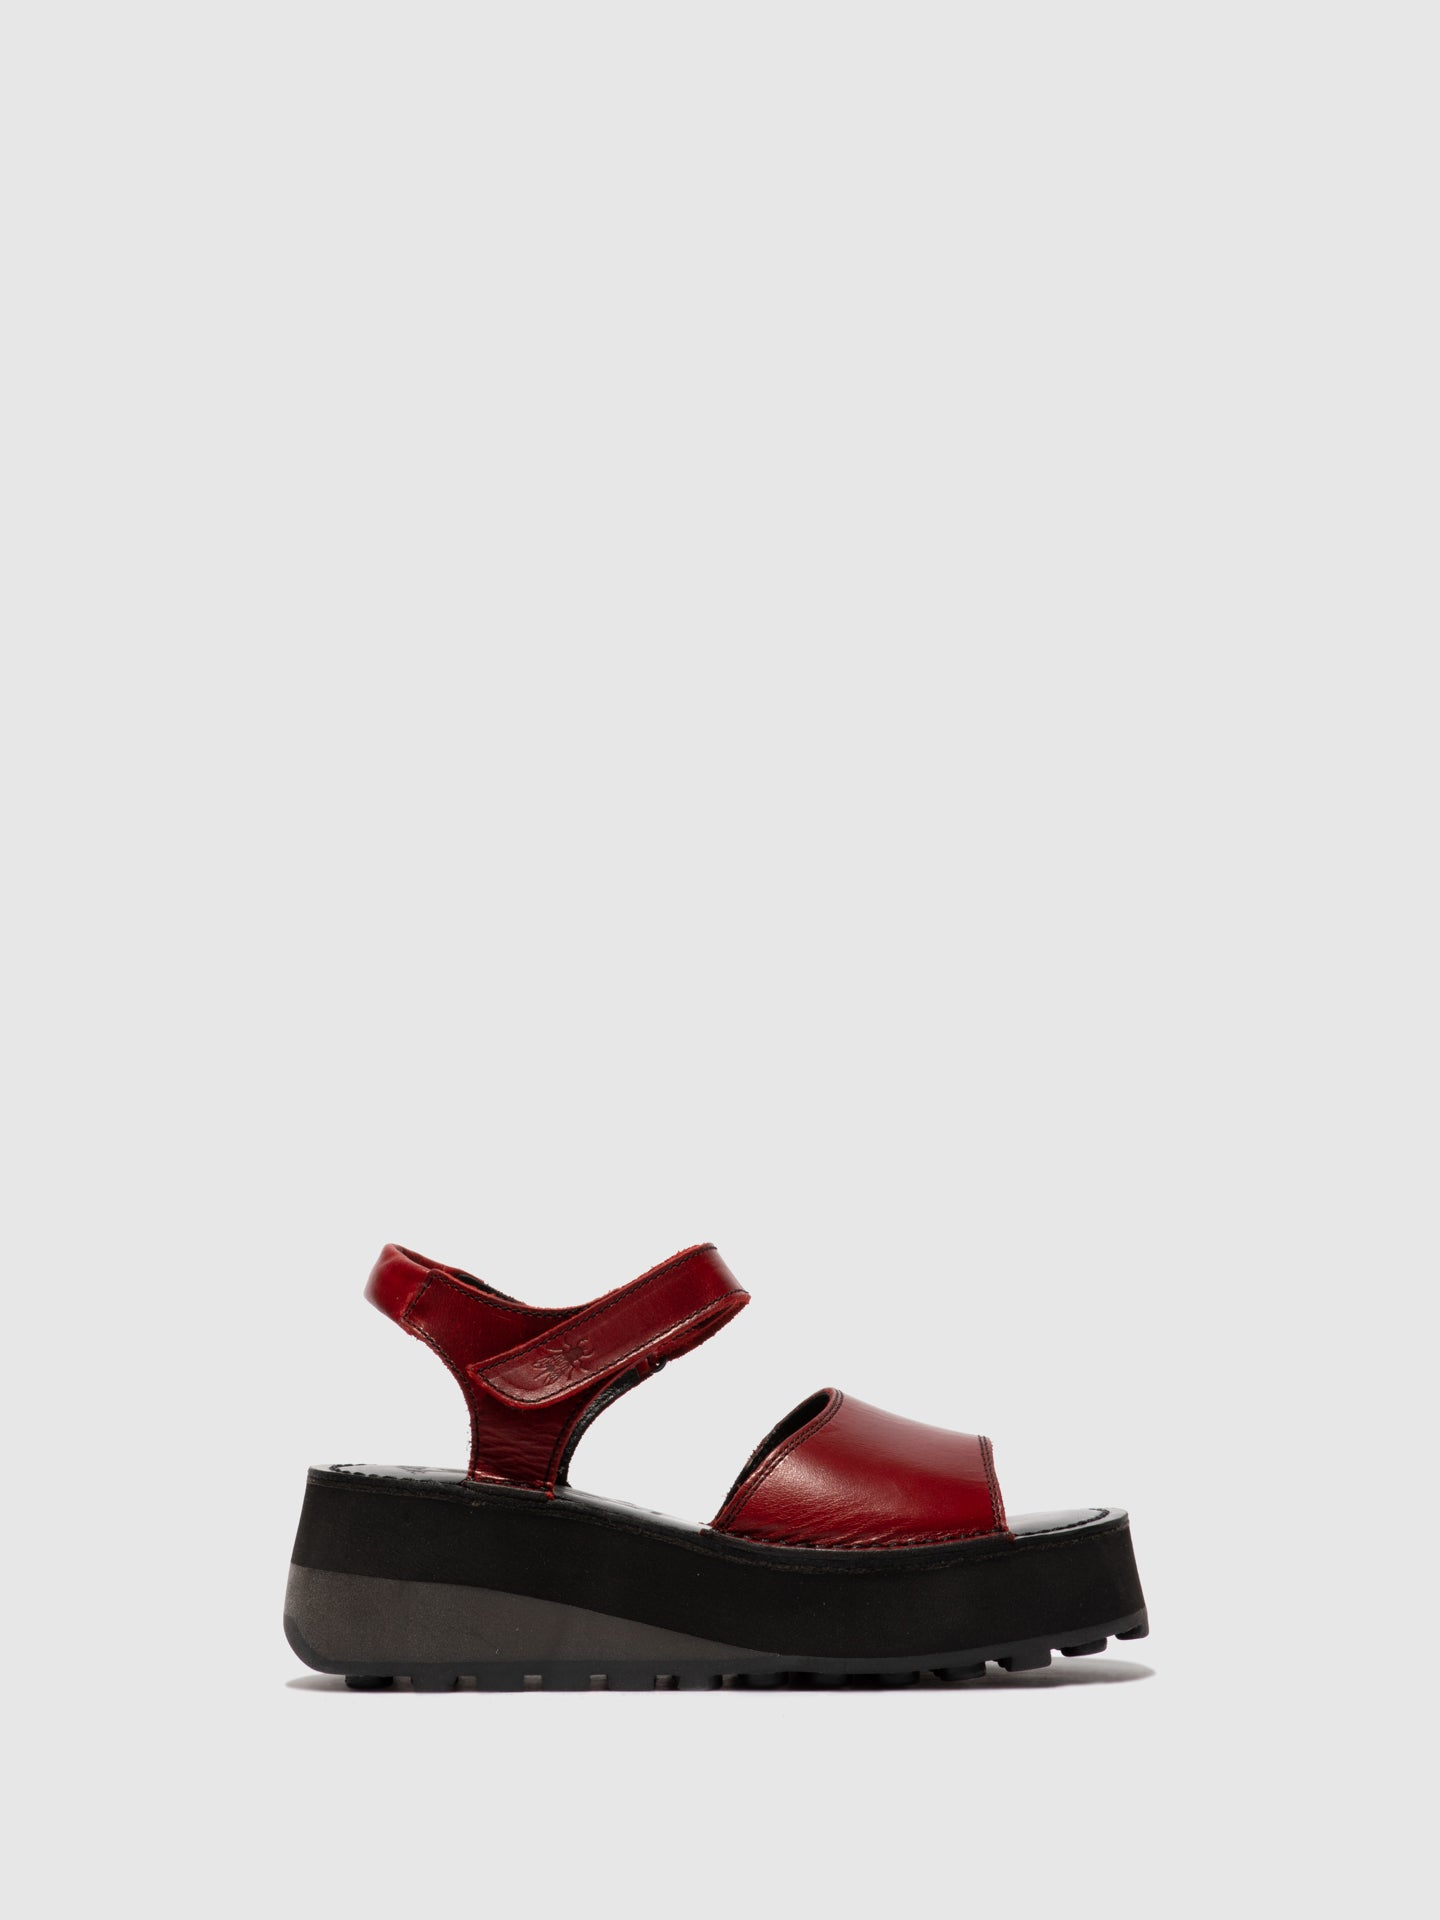 Fly London Velcro Sandals HOST483FLY RED/BLACK